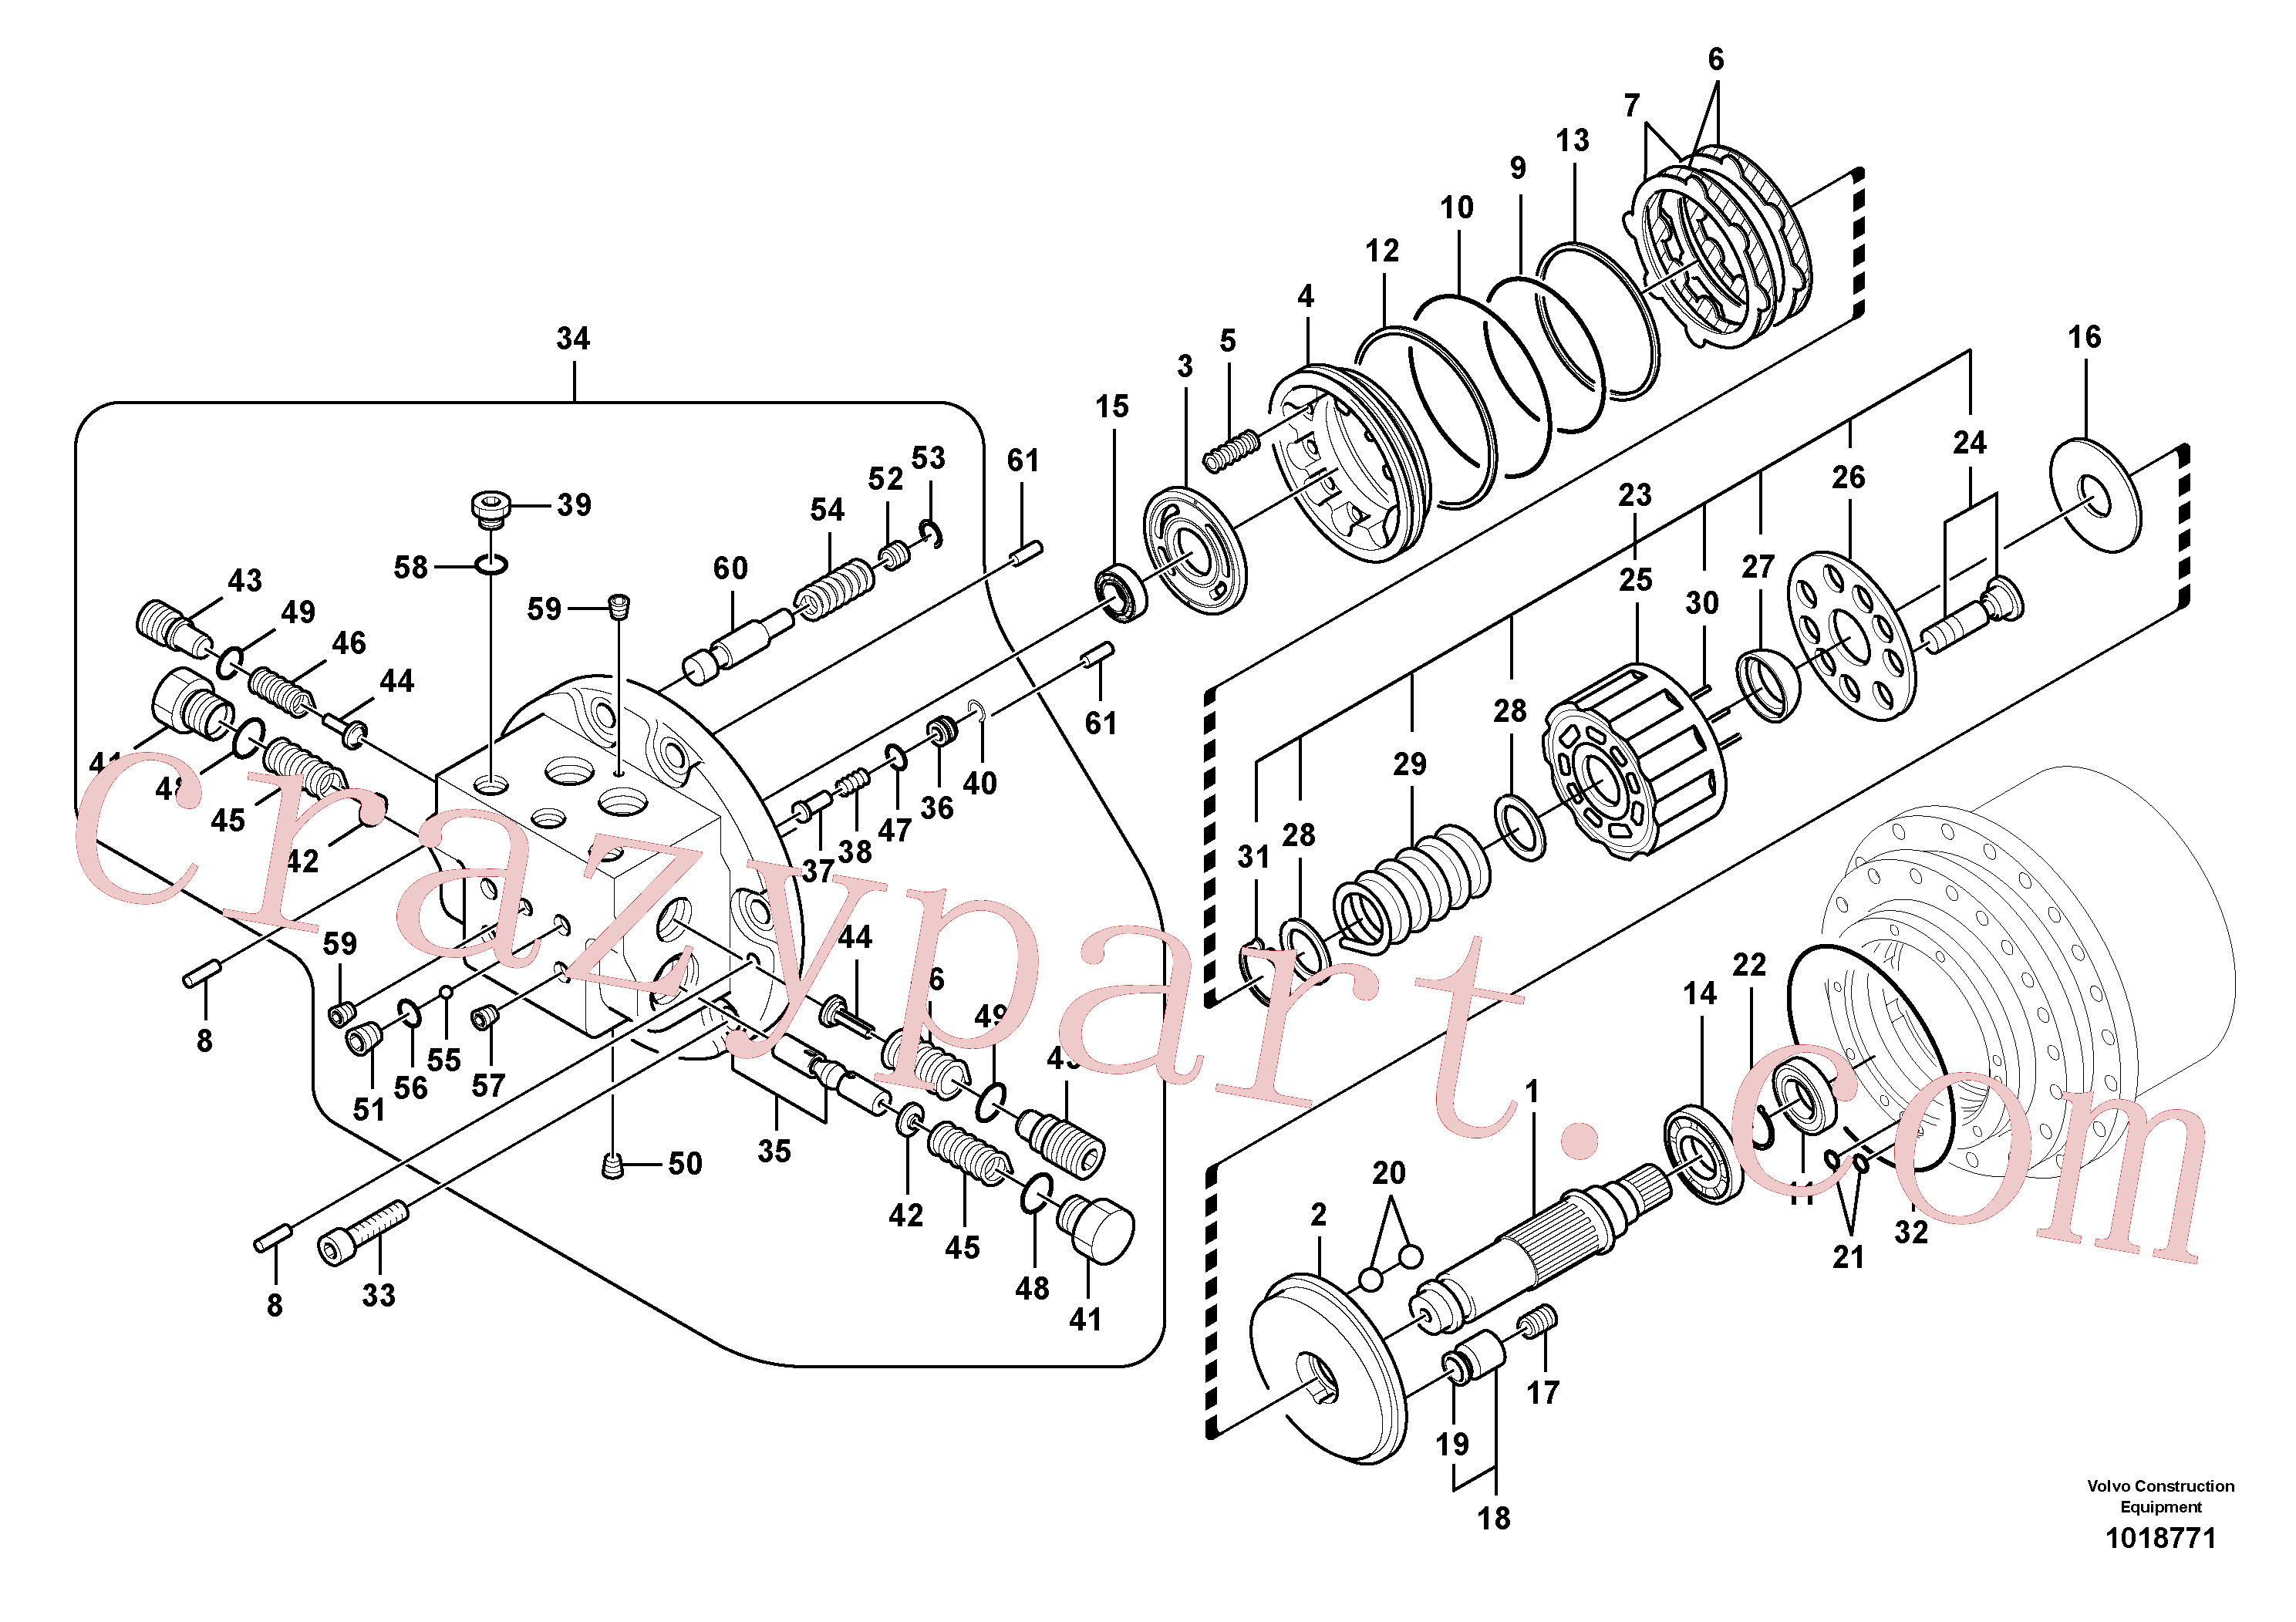 SA8230-10010 for Volvo Travel motor(1018771 assembly)